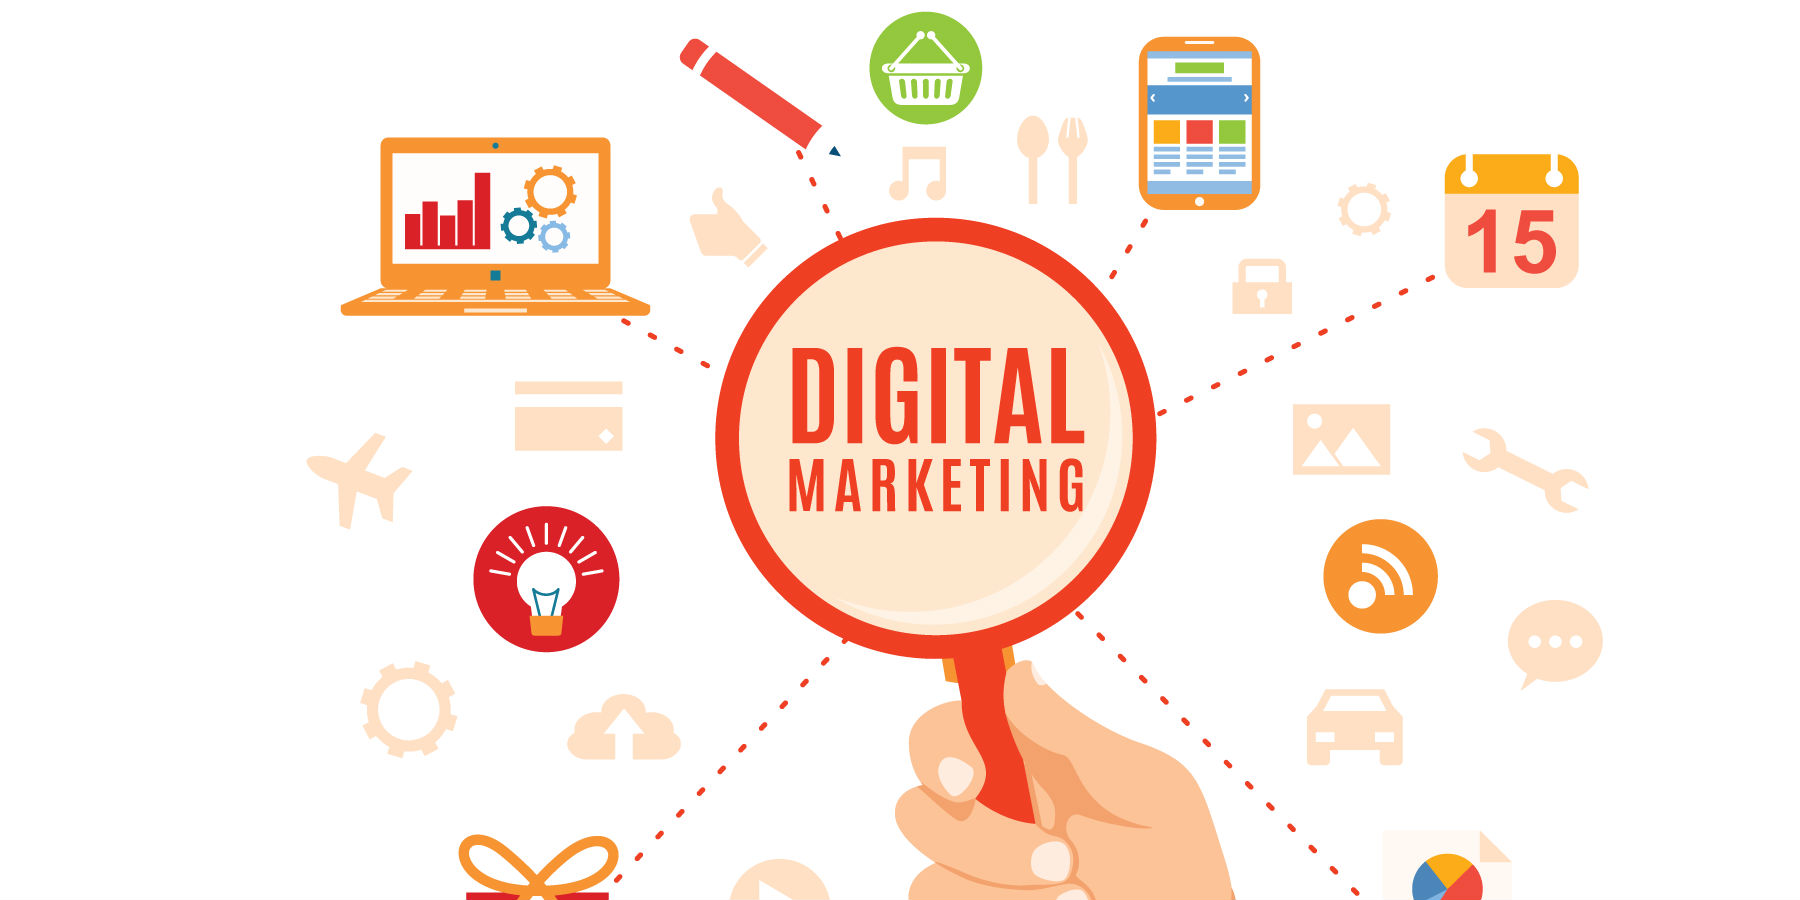 How Digital Marketing Affects Consumer's Behavior